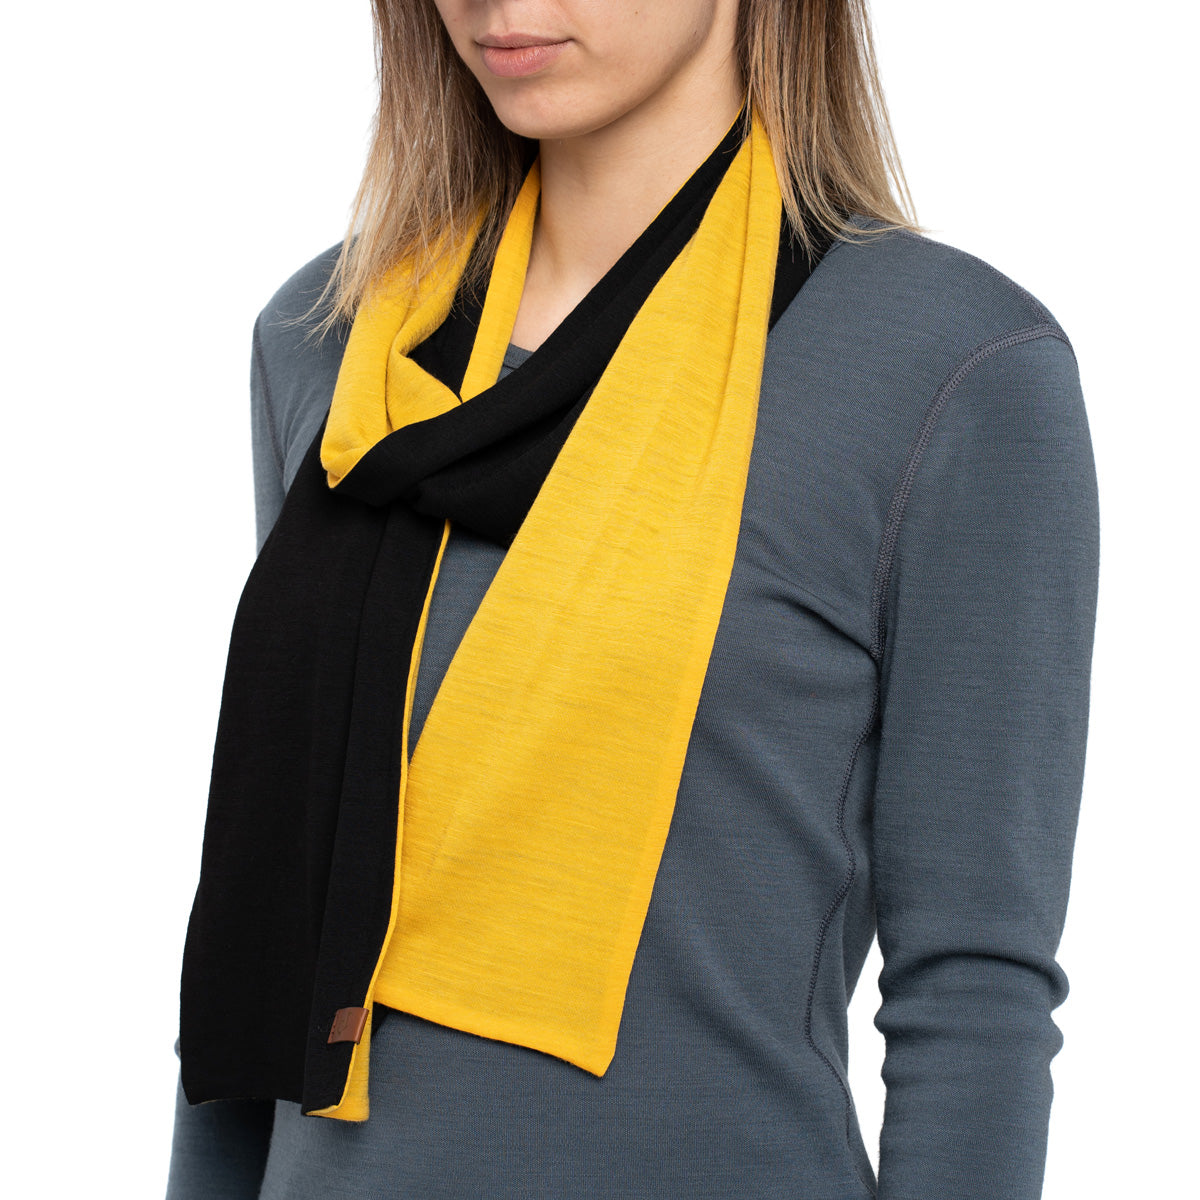 menique Women's Merino Scarf Power Mango/Black Color